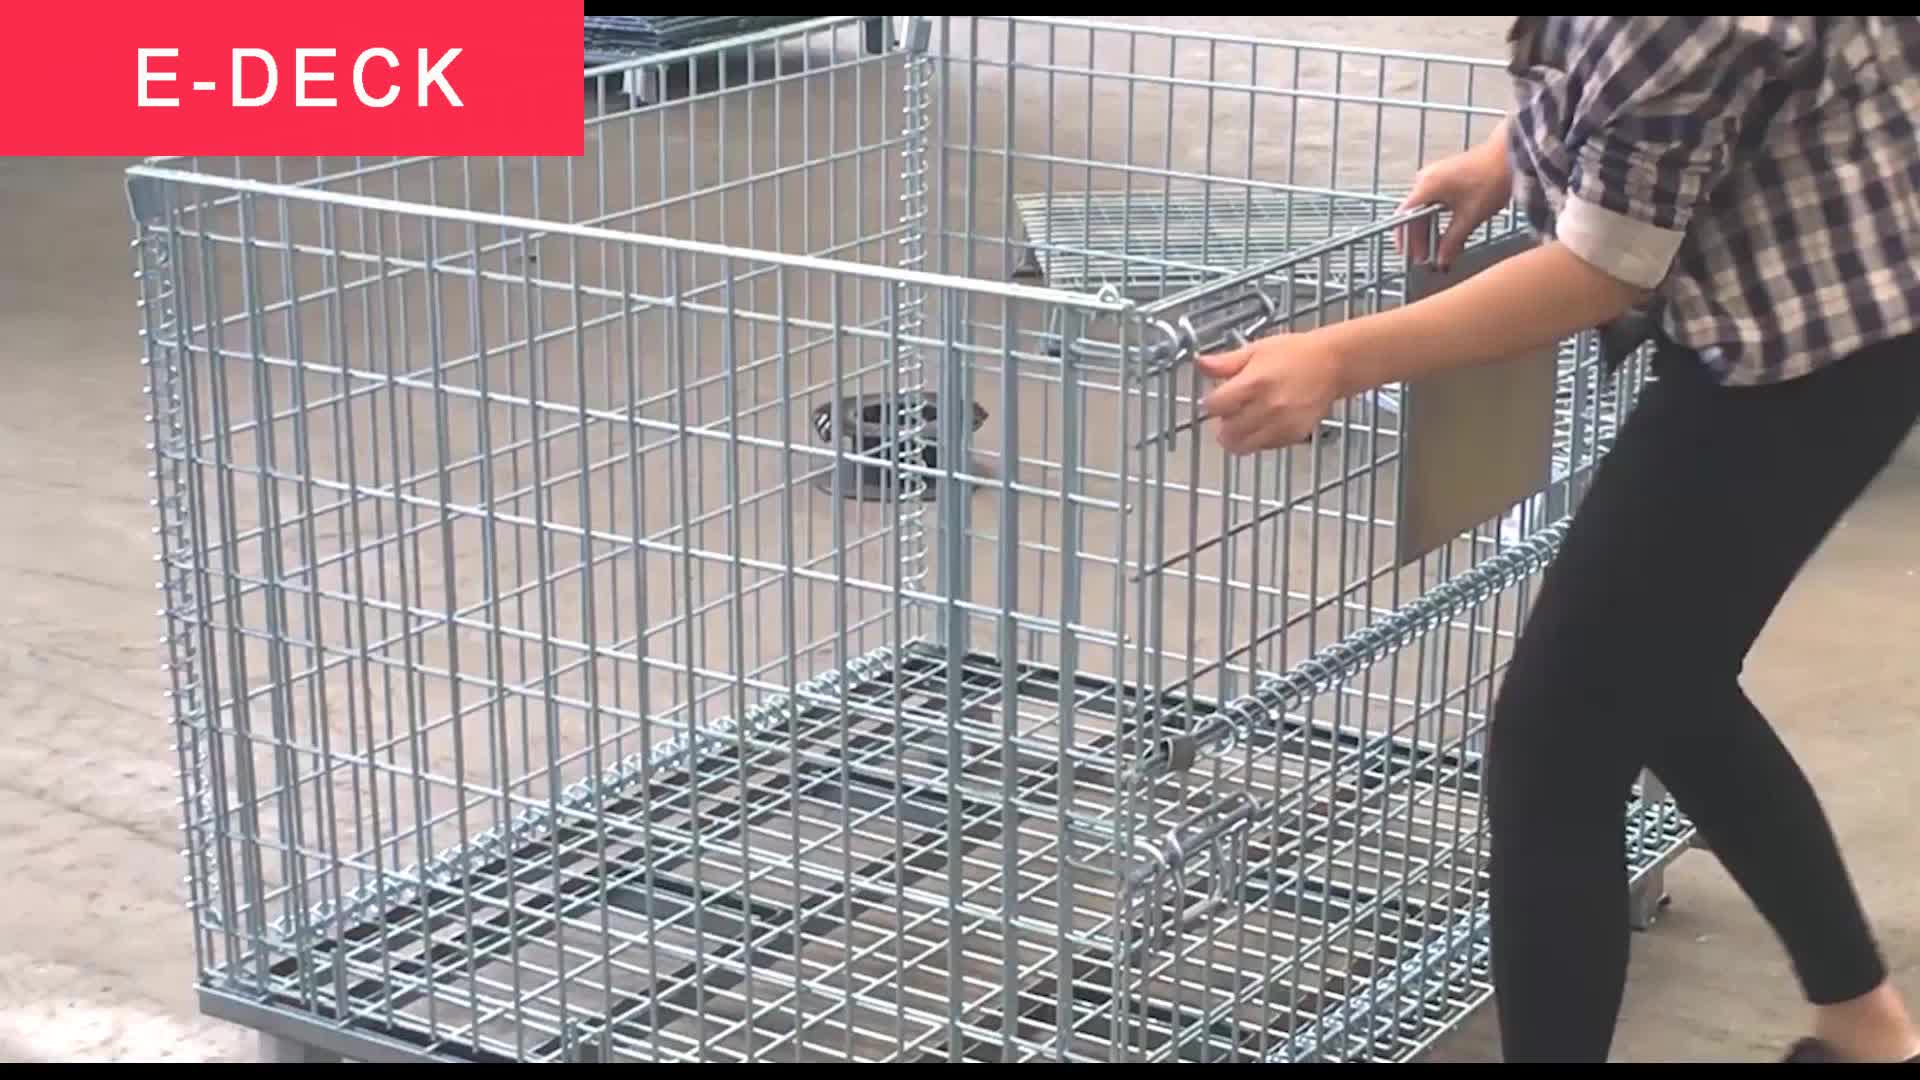 Foldable Rigid Galvanized Stackable Warehouse Collapsible Storage Cargo Rigid Metal Cage Wire Mesh Container